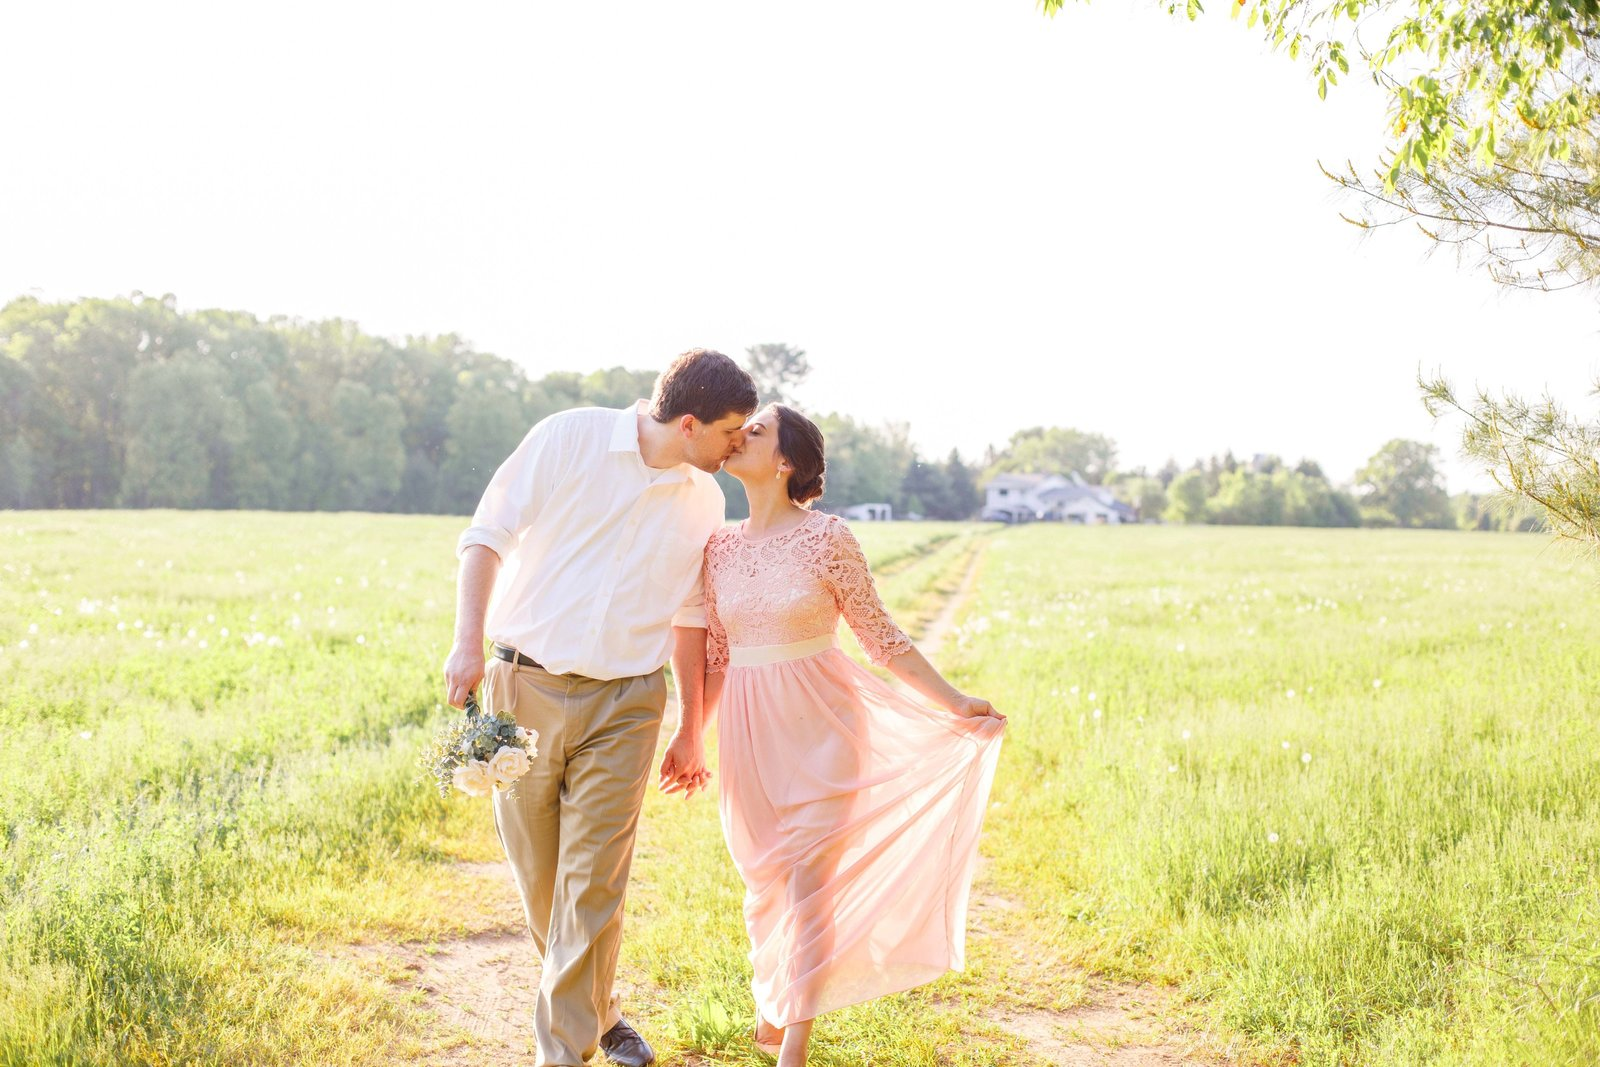 authenticweddingphotography-18